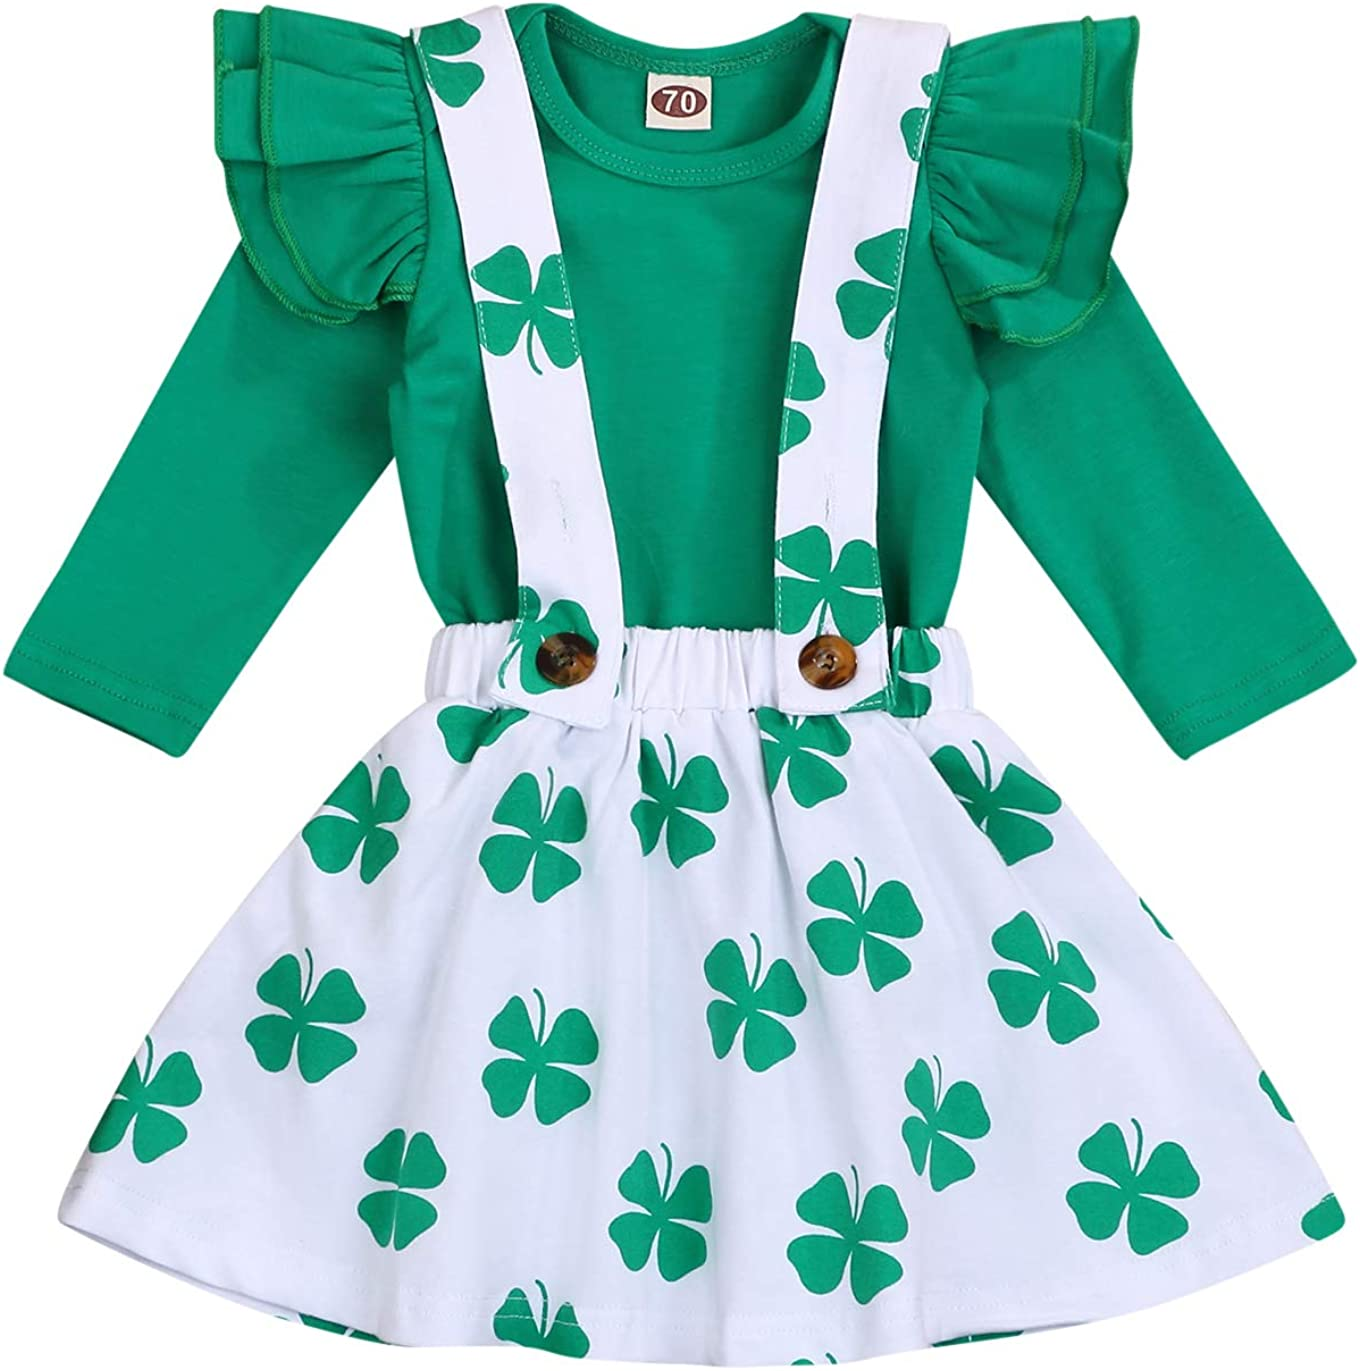 Baby Girl St.Patrick's Day Skirt Set Toddler Girls Ruffle Sleeve Shirts Clover Suspender Dress Outfits